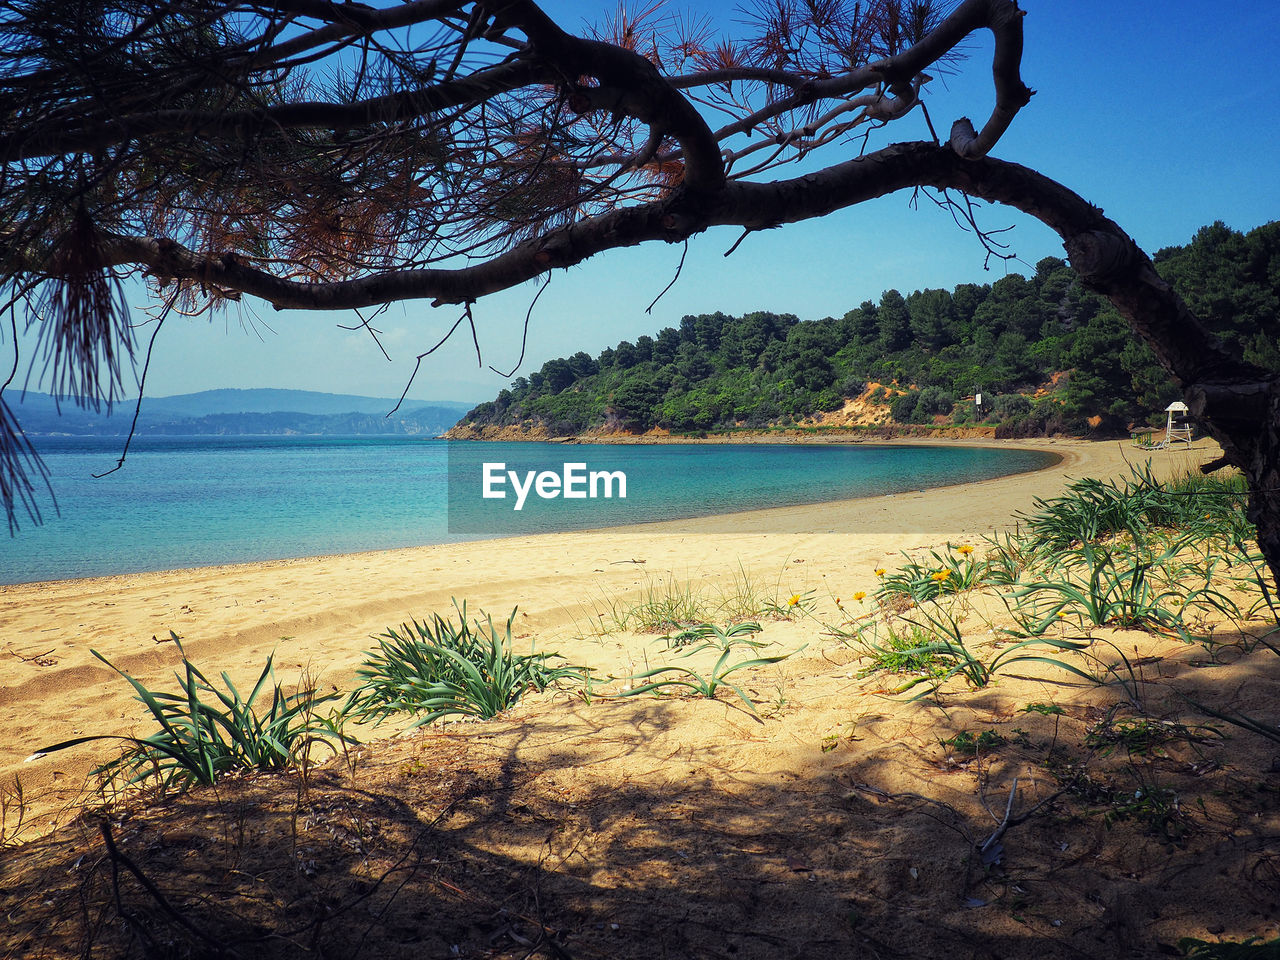 tree, plant, water, sky, tranquility, beauty in nature, sea, tranquil scene, nature, land, scenics - nature, beach, growth, no people, day, branch, outdoors, sand, clear sky